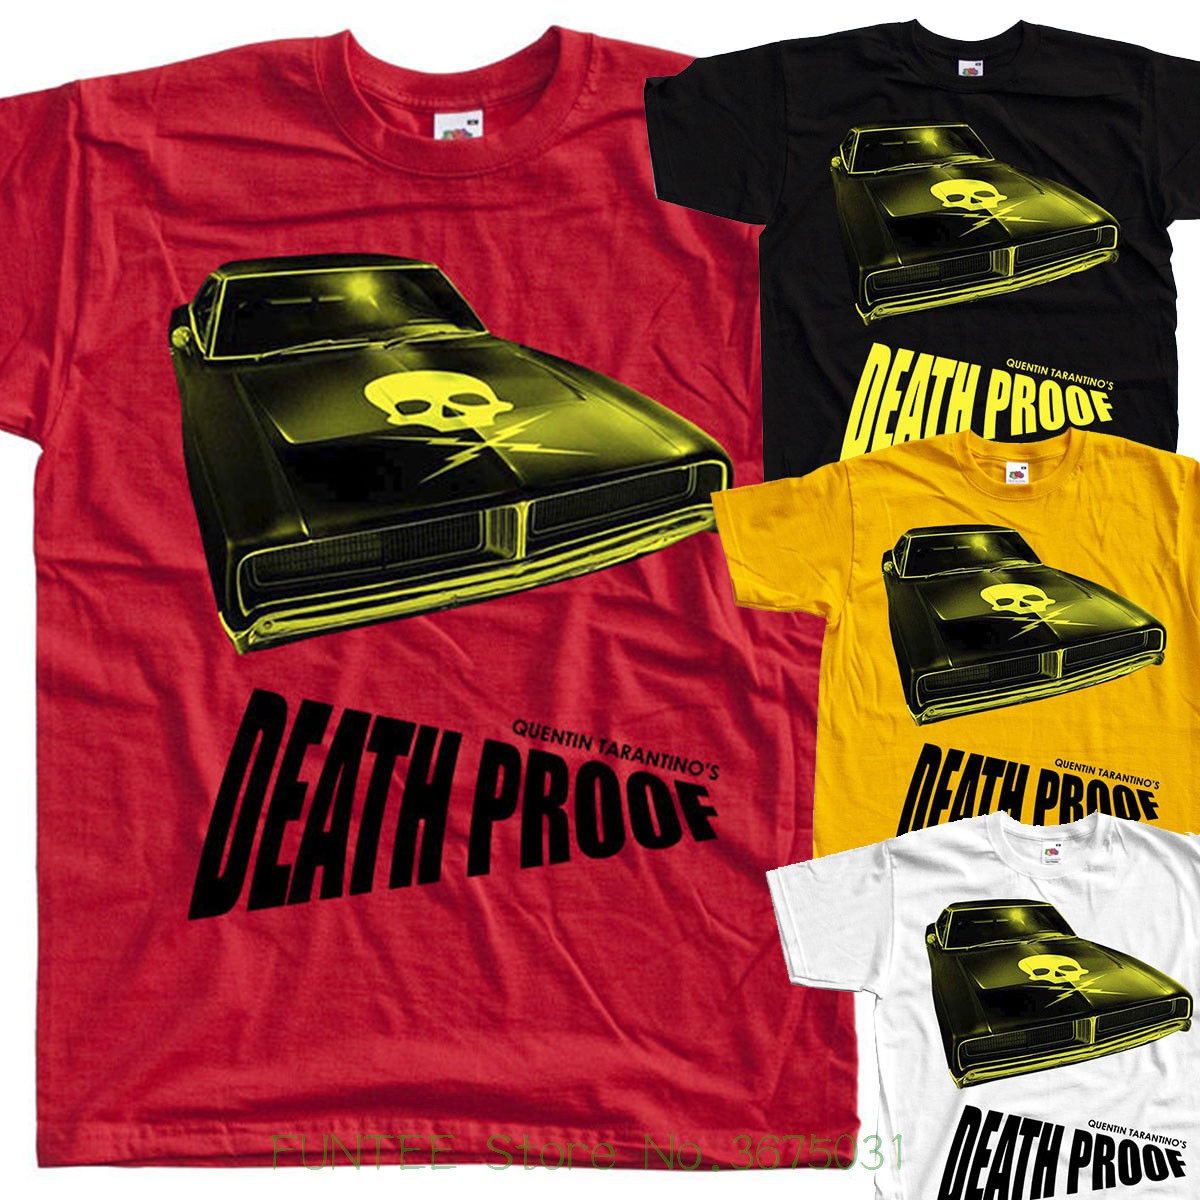 men-cool-tees-tops-death-proof-ver-3-quentin-font-b-tarantino-b-font-poster-t-shirt-all-sizes-s-to-5xl